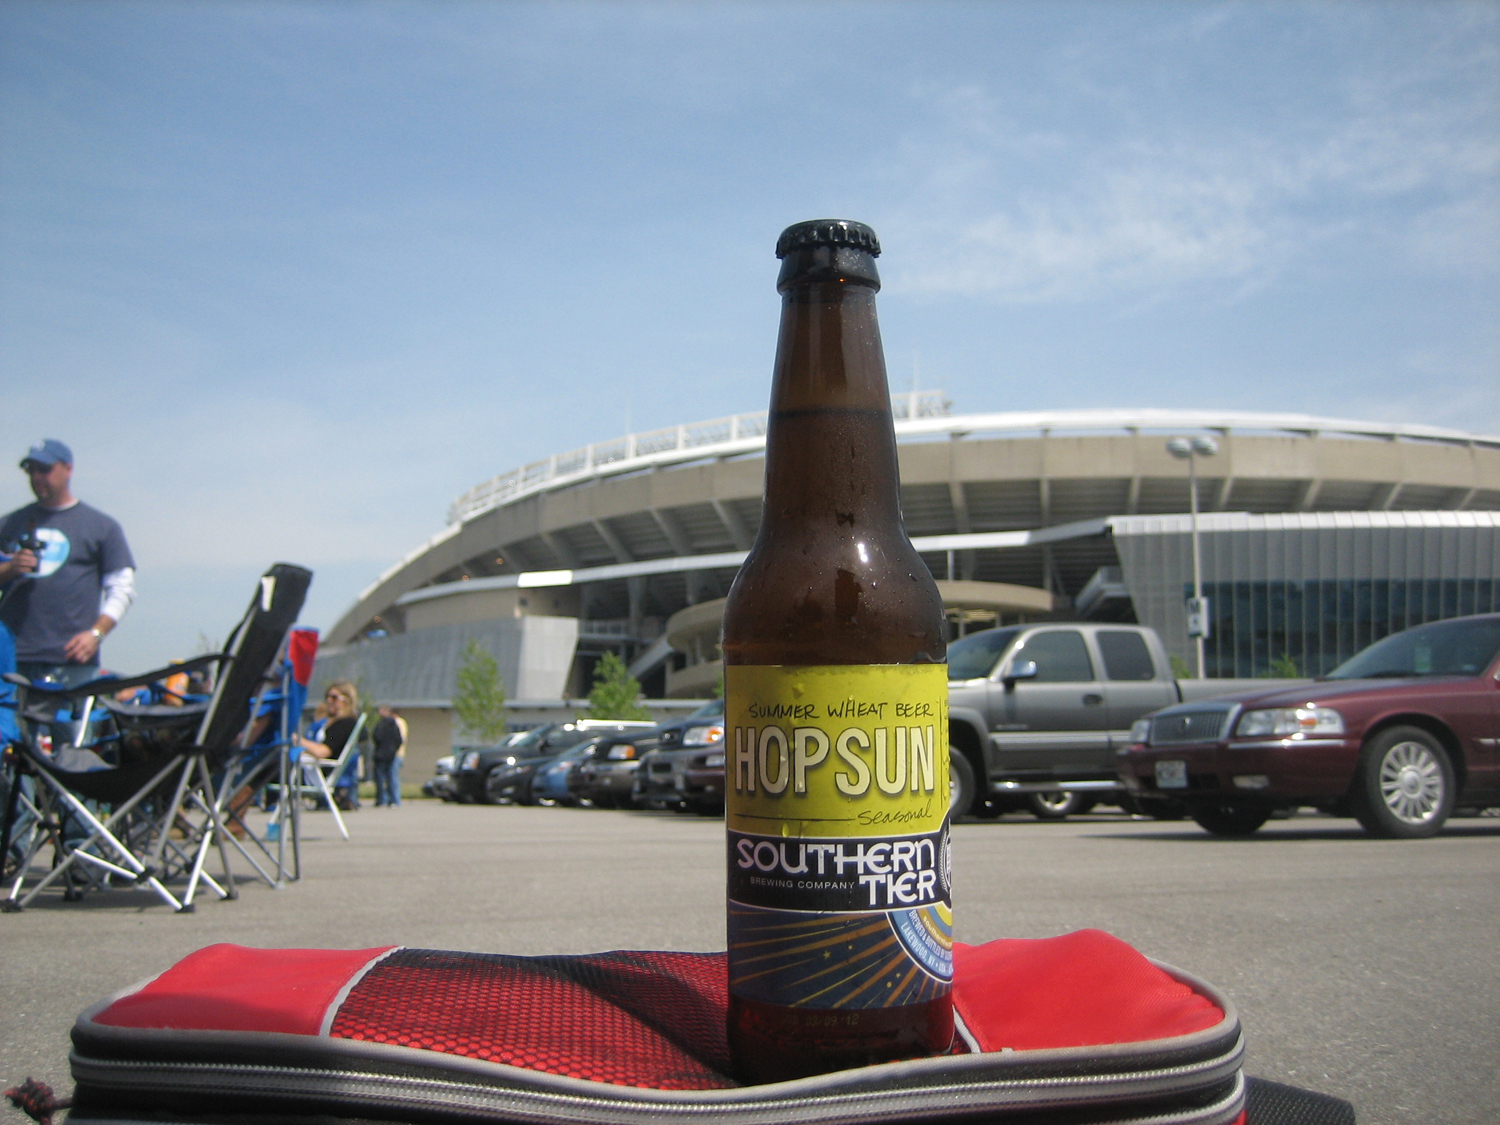 Tailgate with Hop Sun summer seasonal beer from Southern Tier.